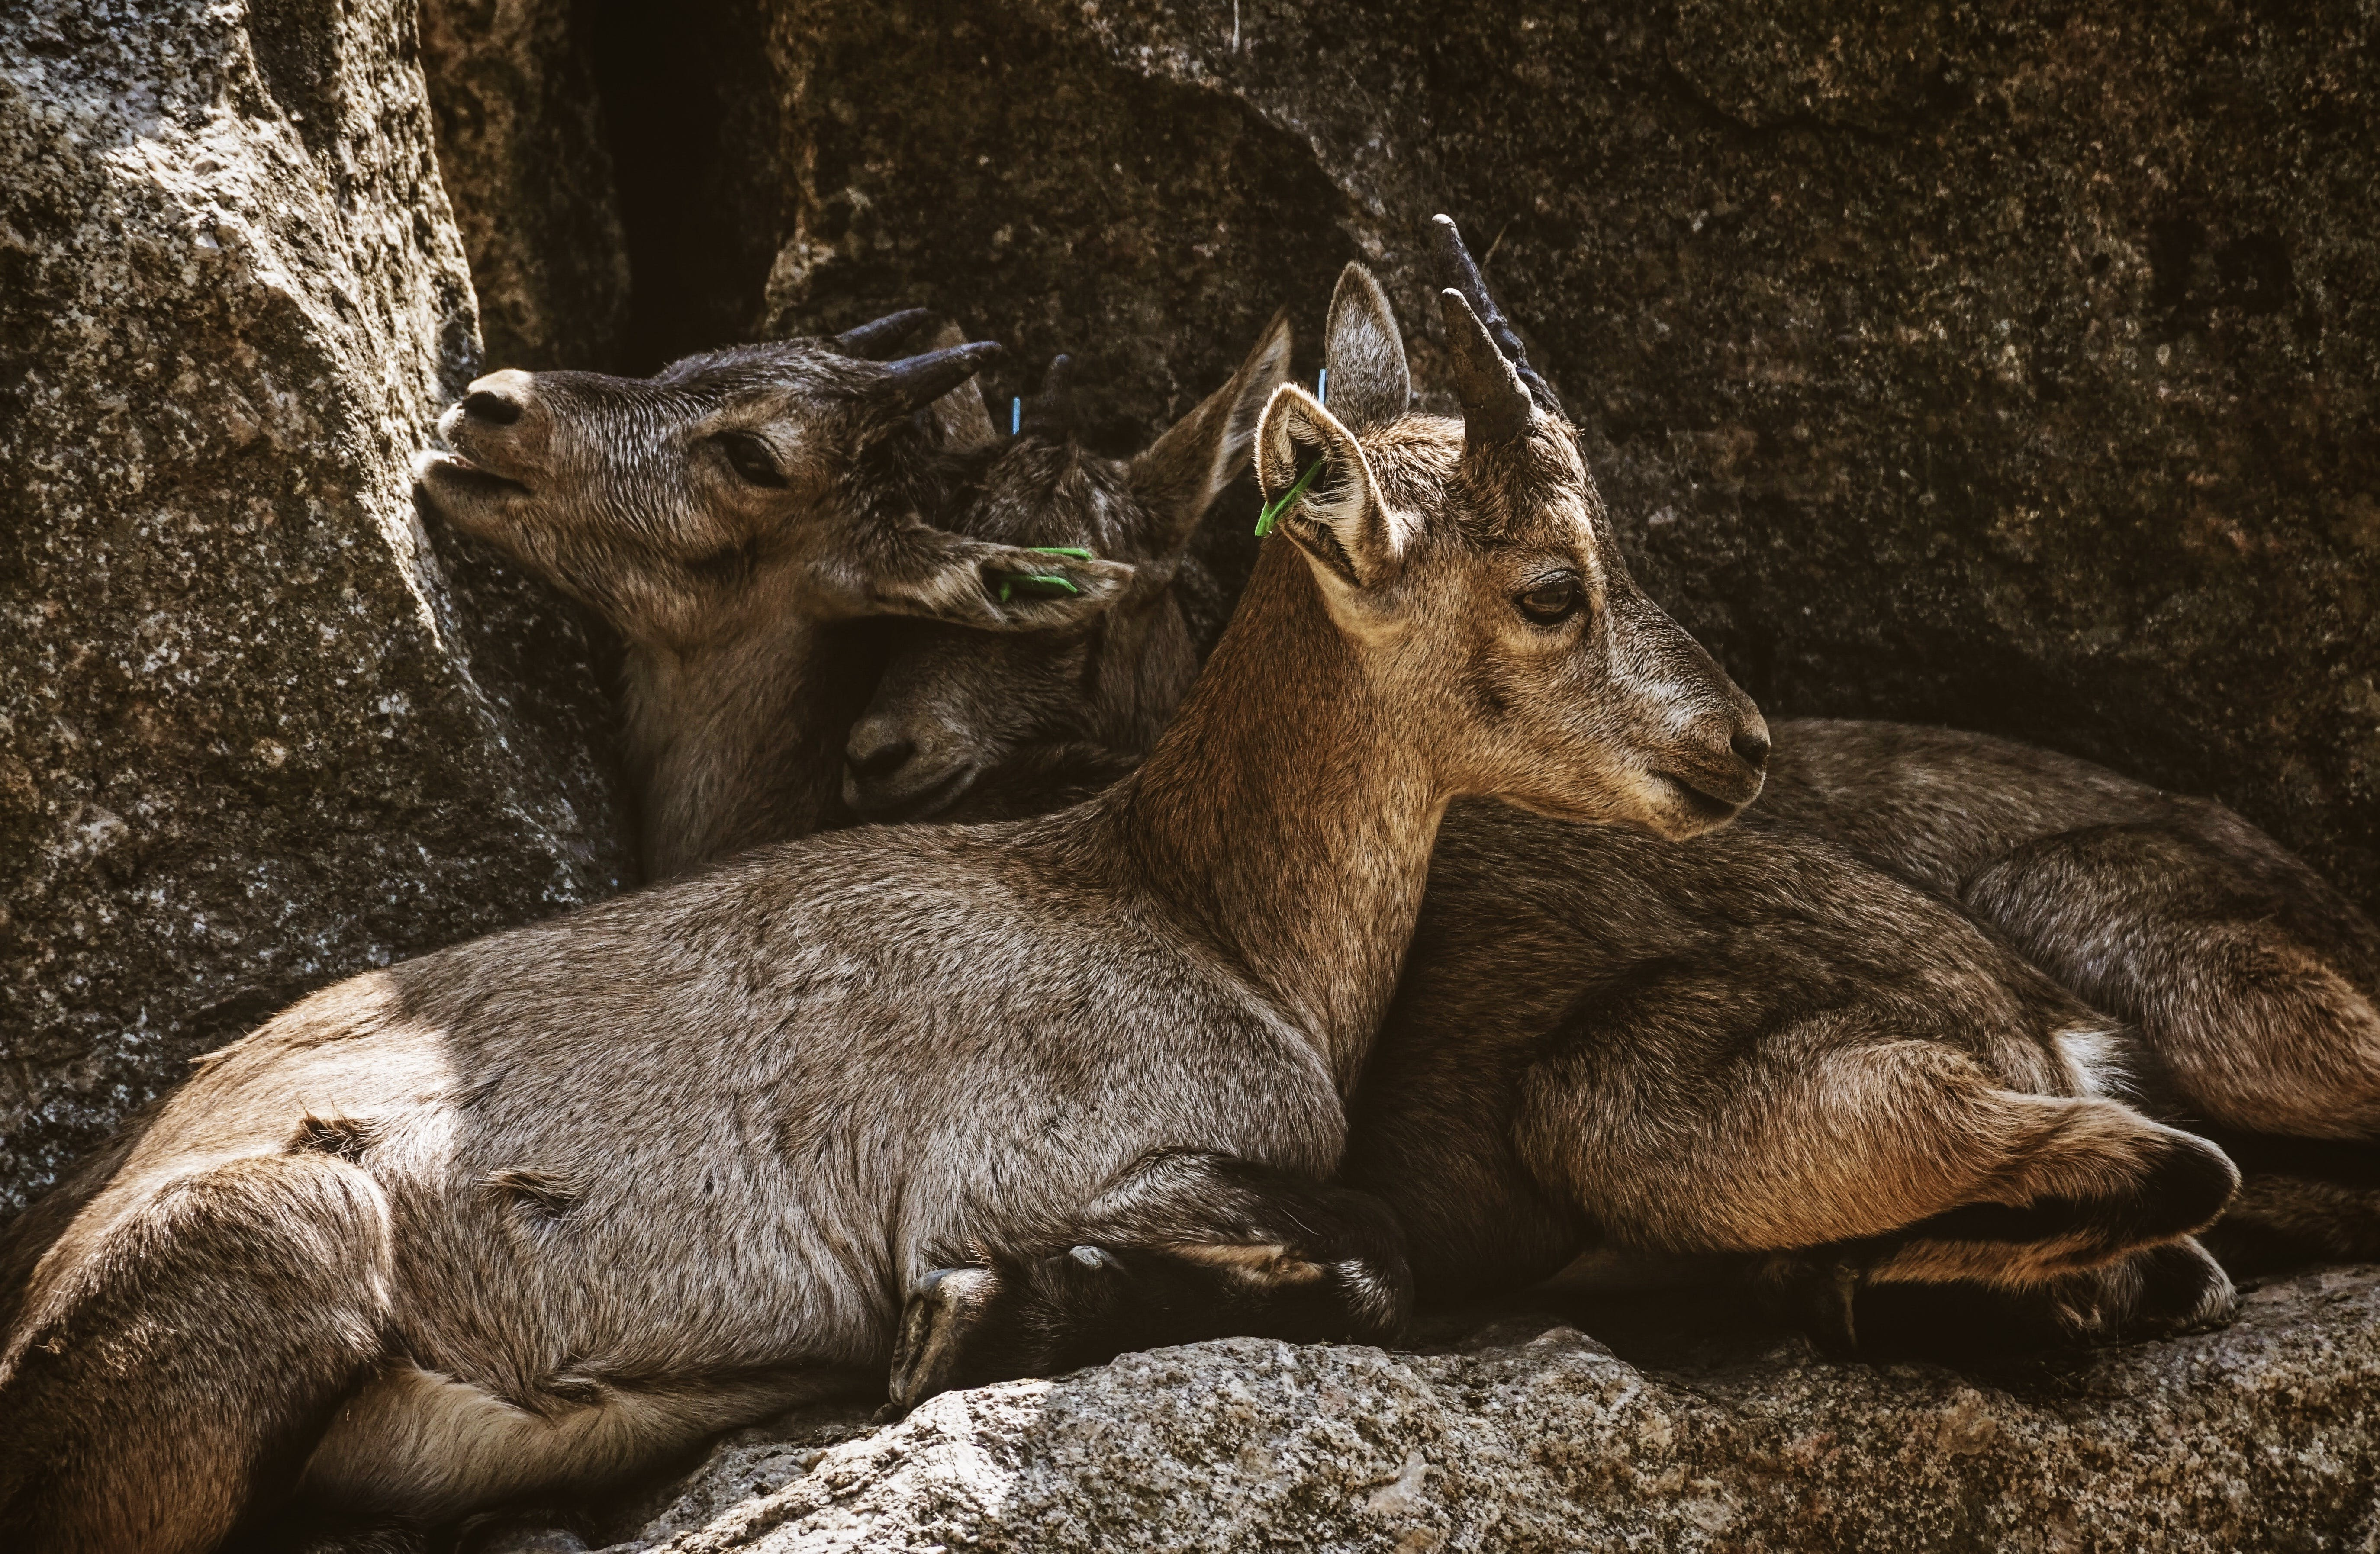 Two Brown Goat Kids Cuddling Each Other